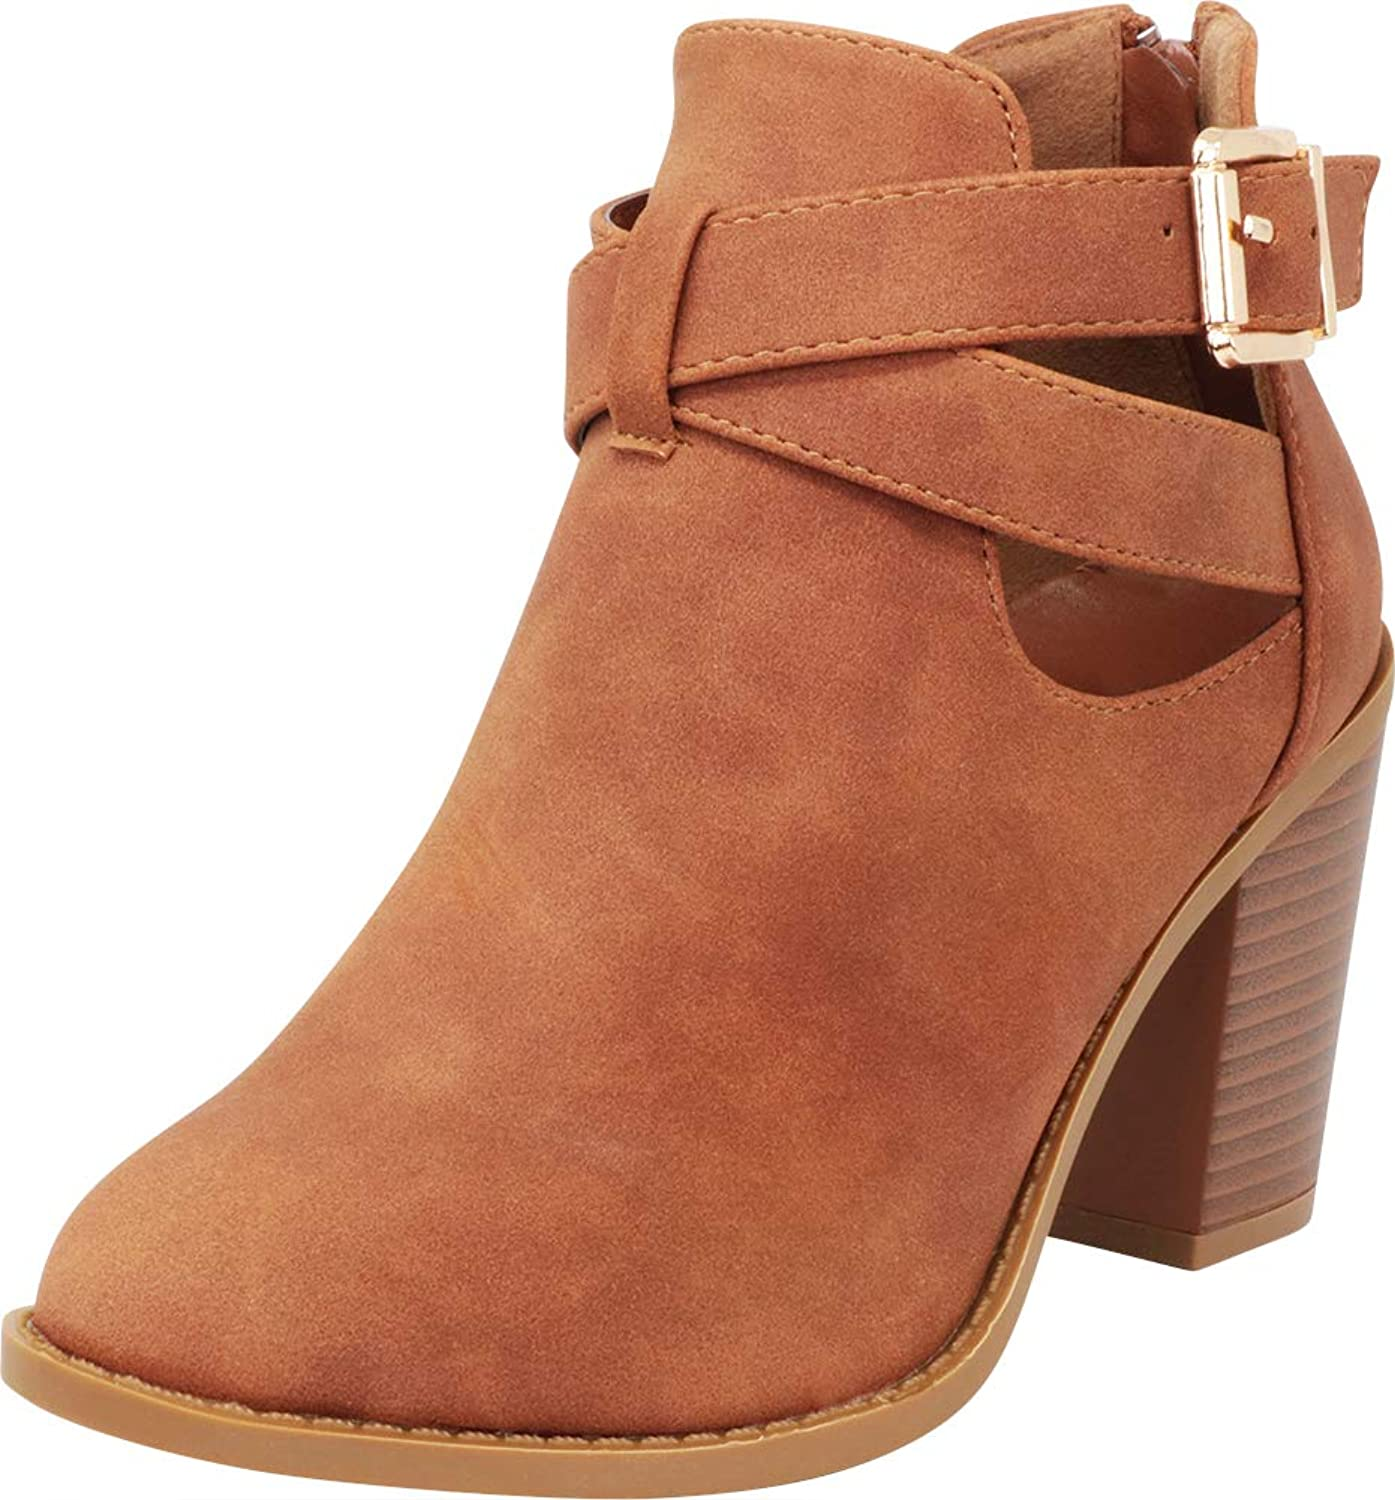 Cambridge Select Women's Crisscross Strappy Cutout Chunky Stacked Heel Ankle Bootie